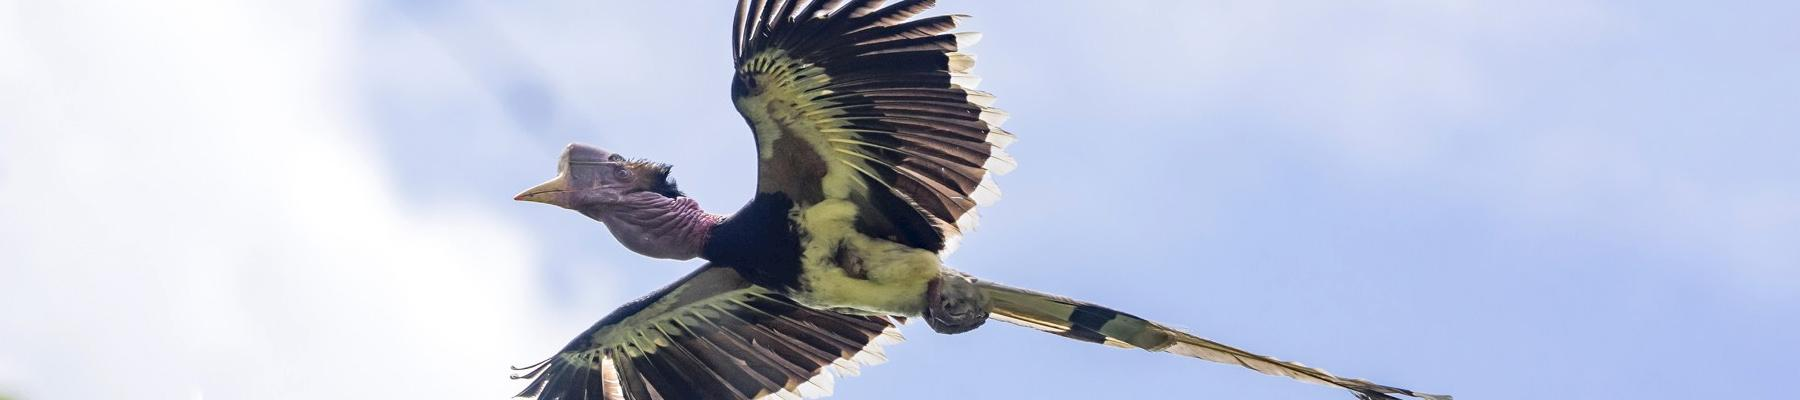 Flying in the face of danger, the Helmeted Hornbill © Muhammad Alzahri